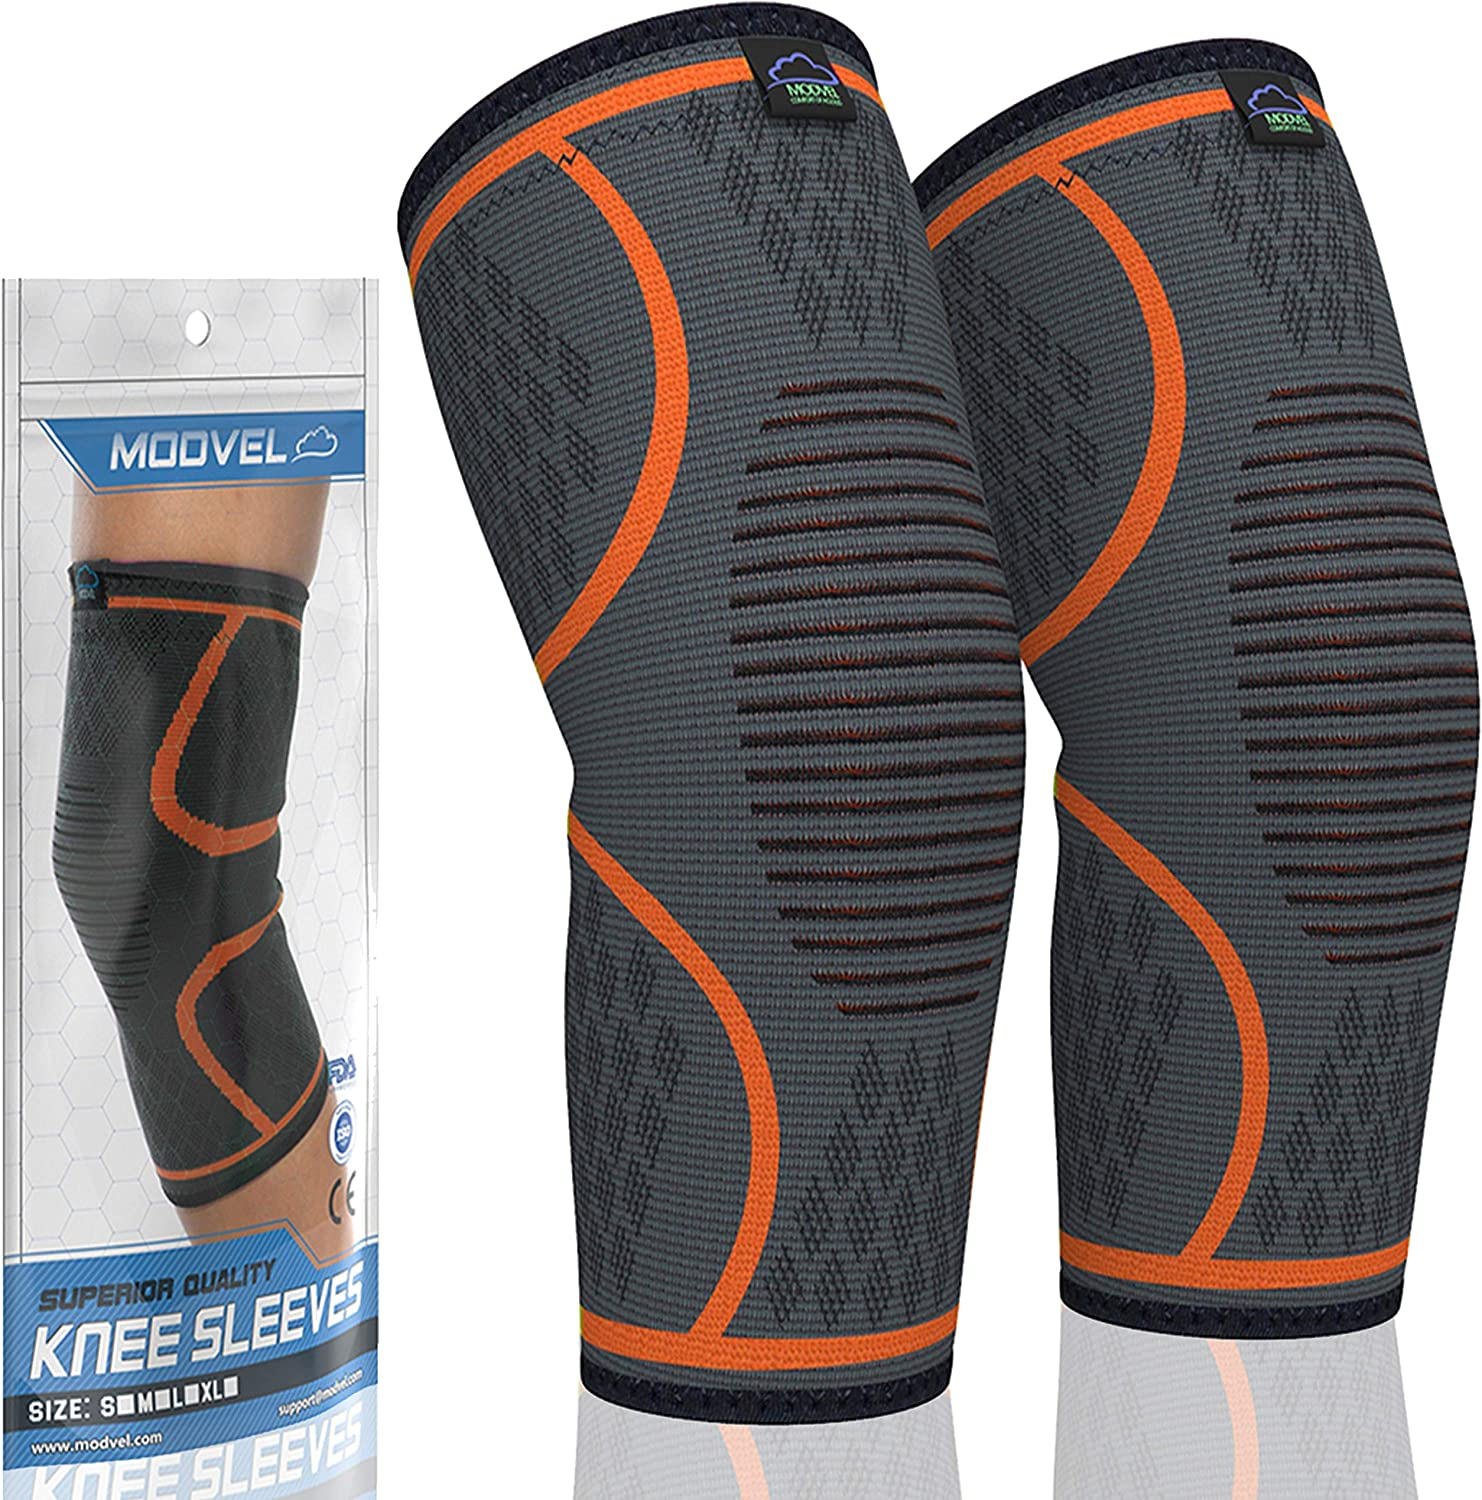 Modvel Compression Knee Sleeve (Pair) $15.90 Coupon